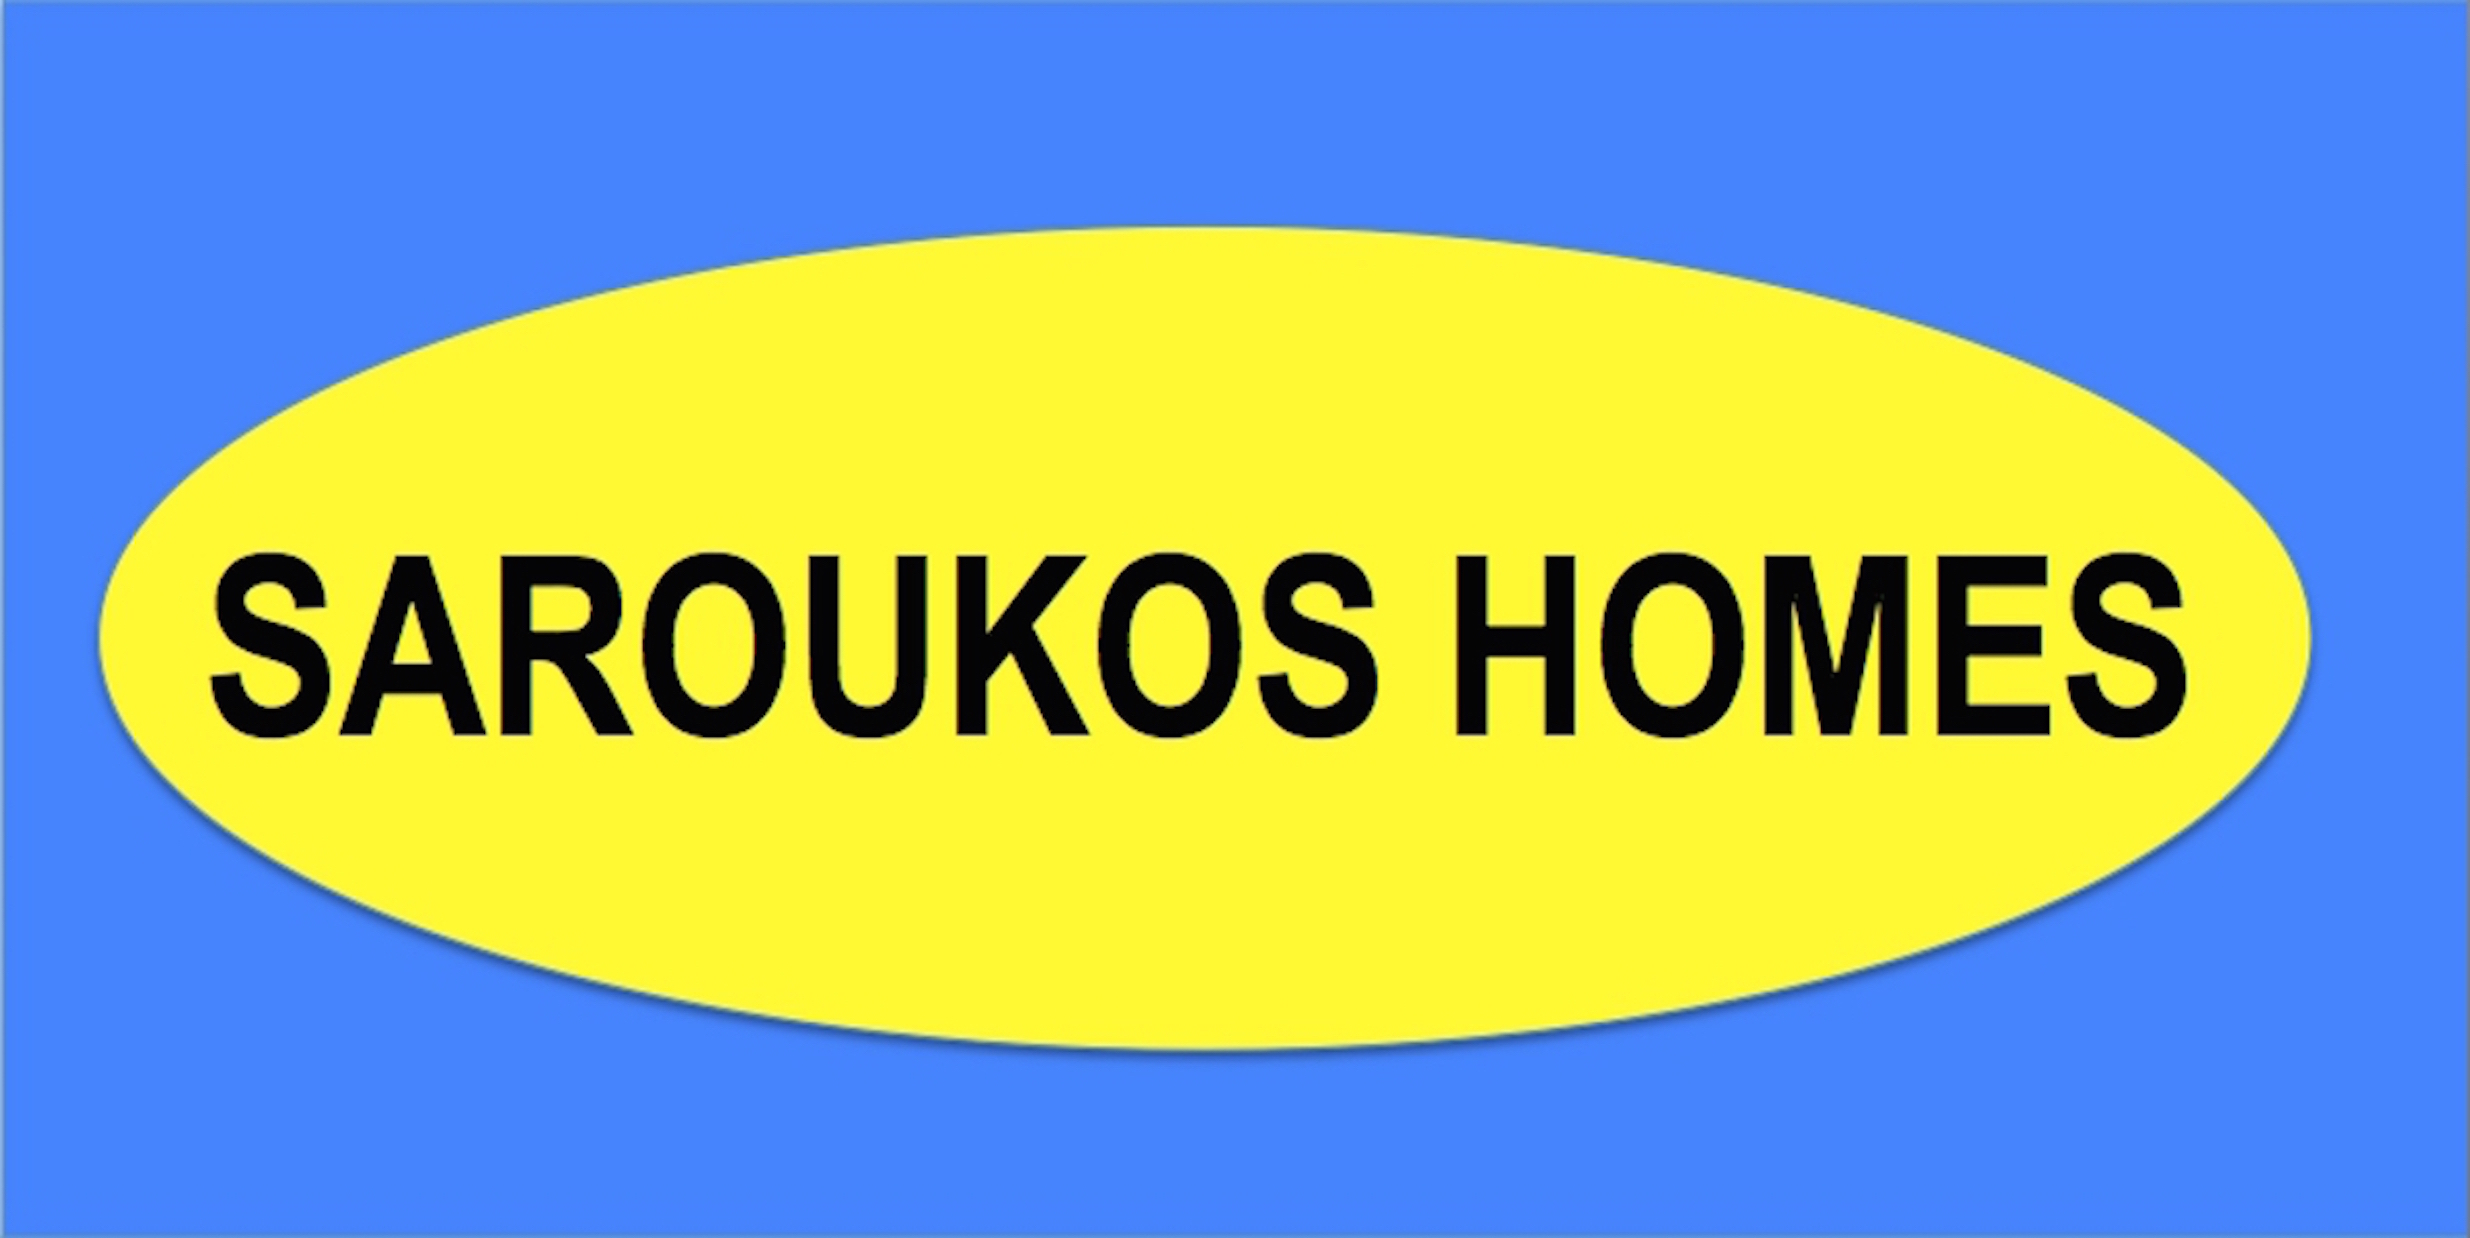 Saroukos Homes